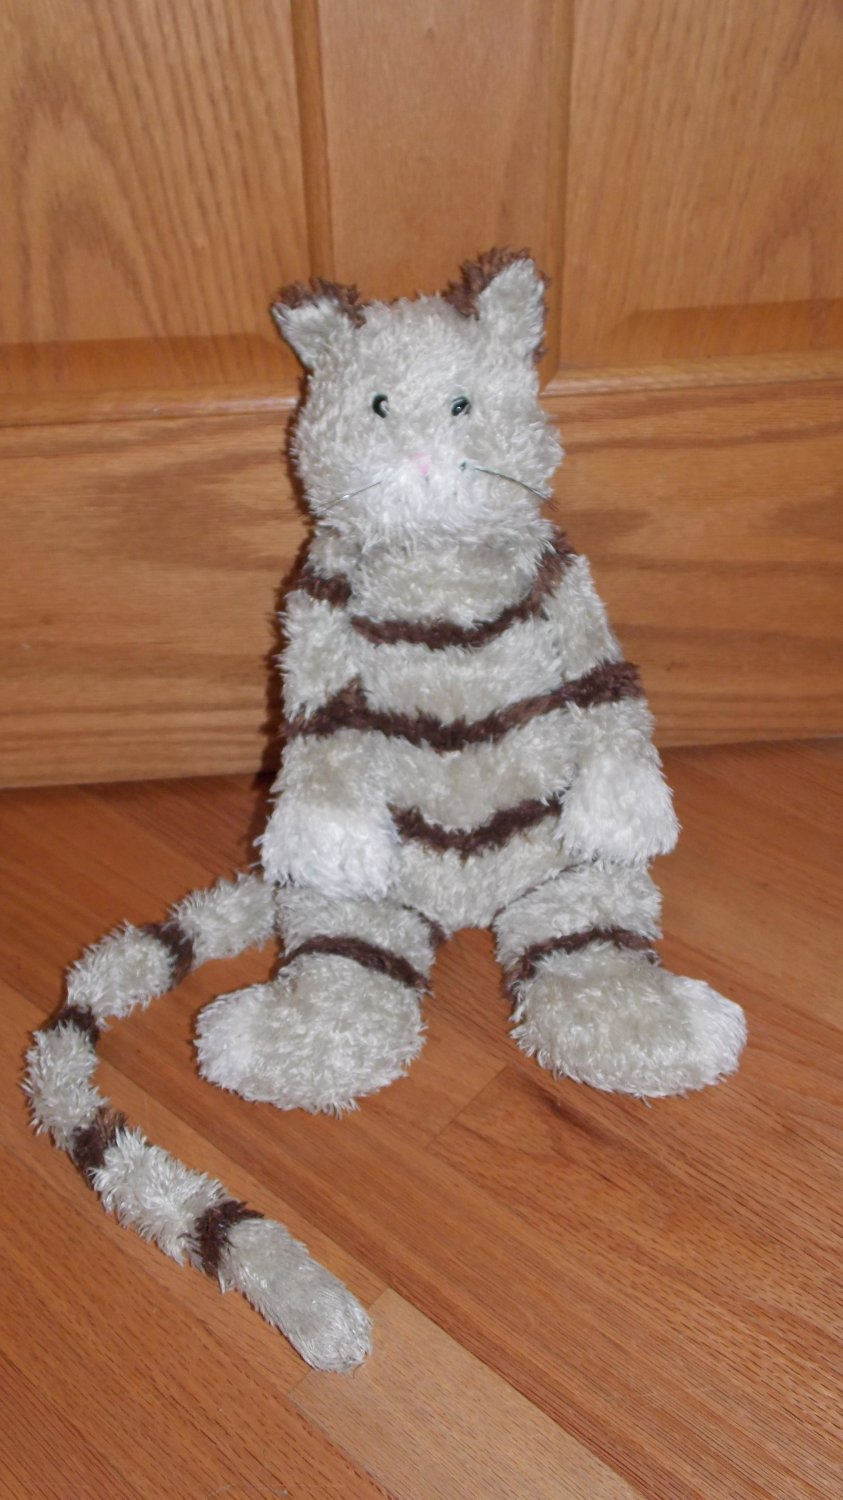 Jellycat Plush 17 Inch Shaggy Bunglie Beige Tan Brown Striped Kitty Cat Toy Long Tail Jelly Cat